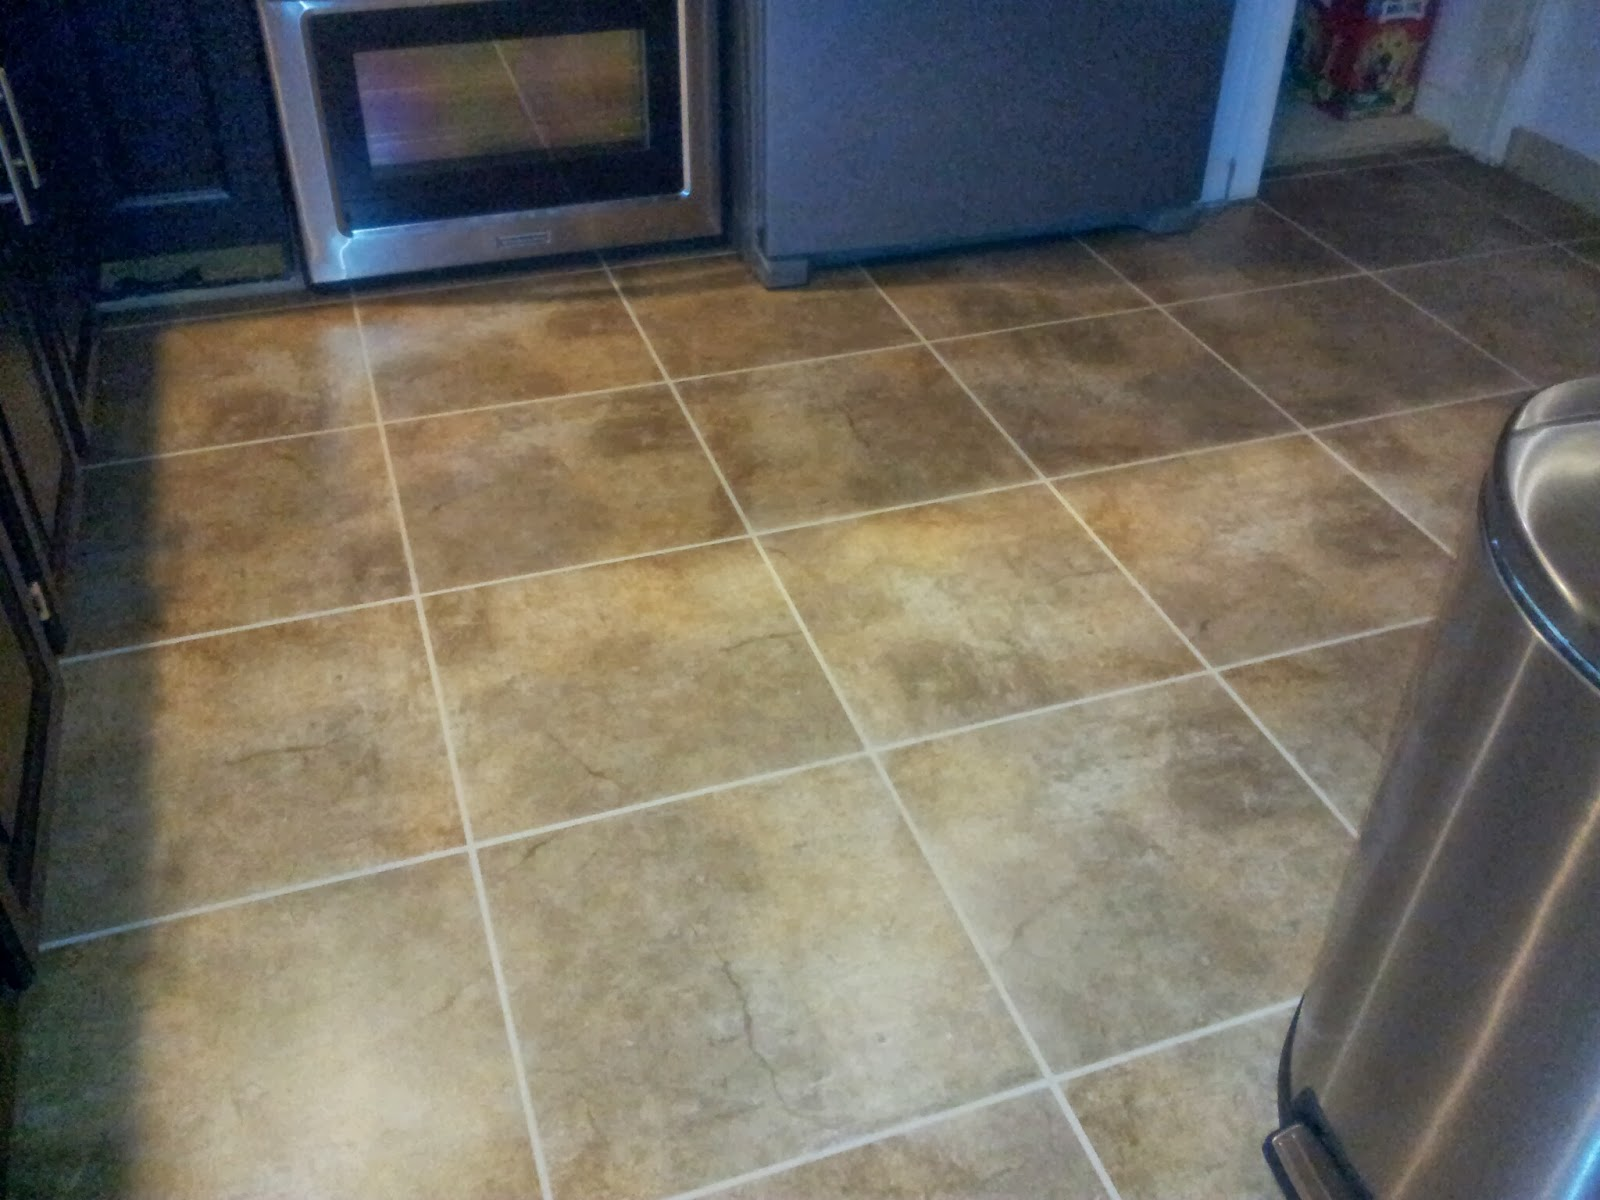 Installing snapstone kitchen floor tile for our home remodel ian kitchen tile grouting dailygadgetfo Images